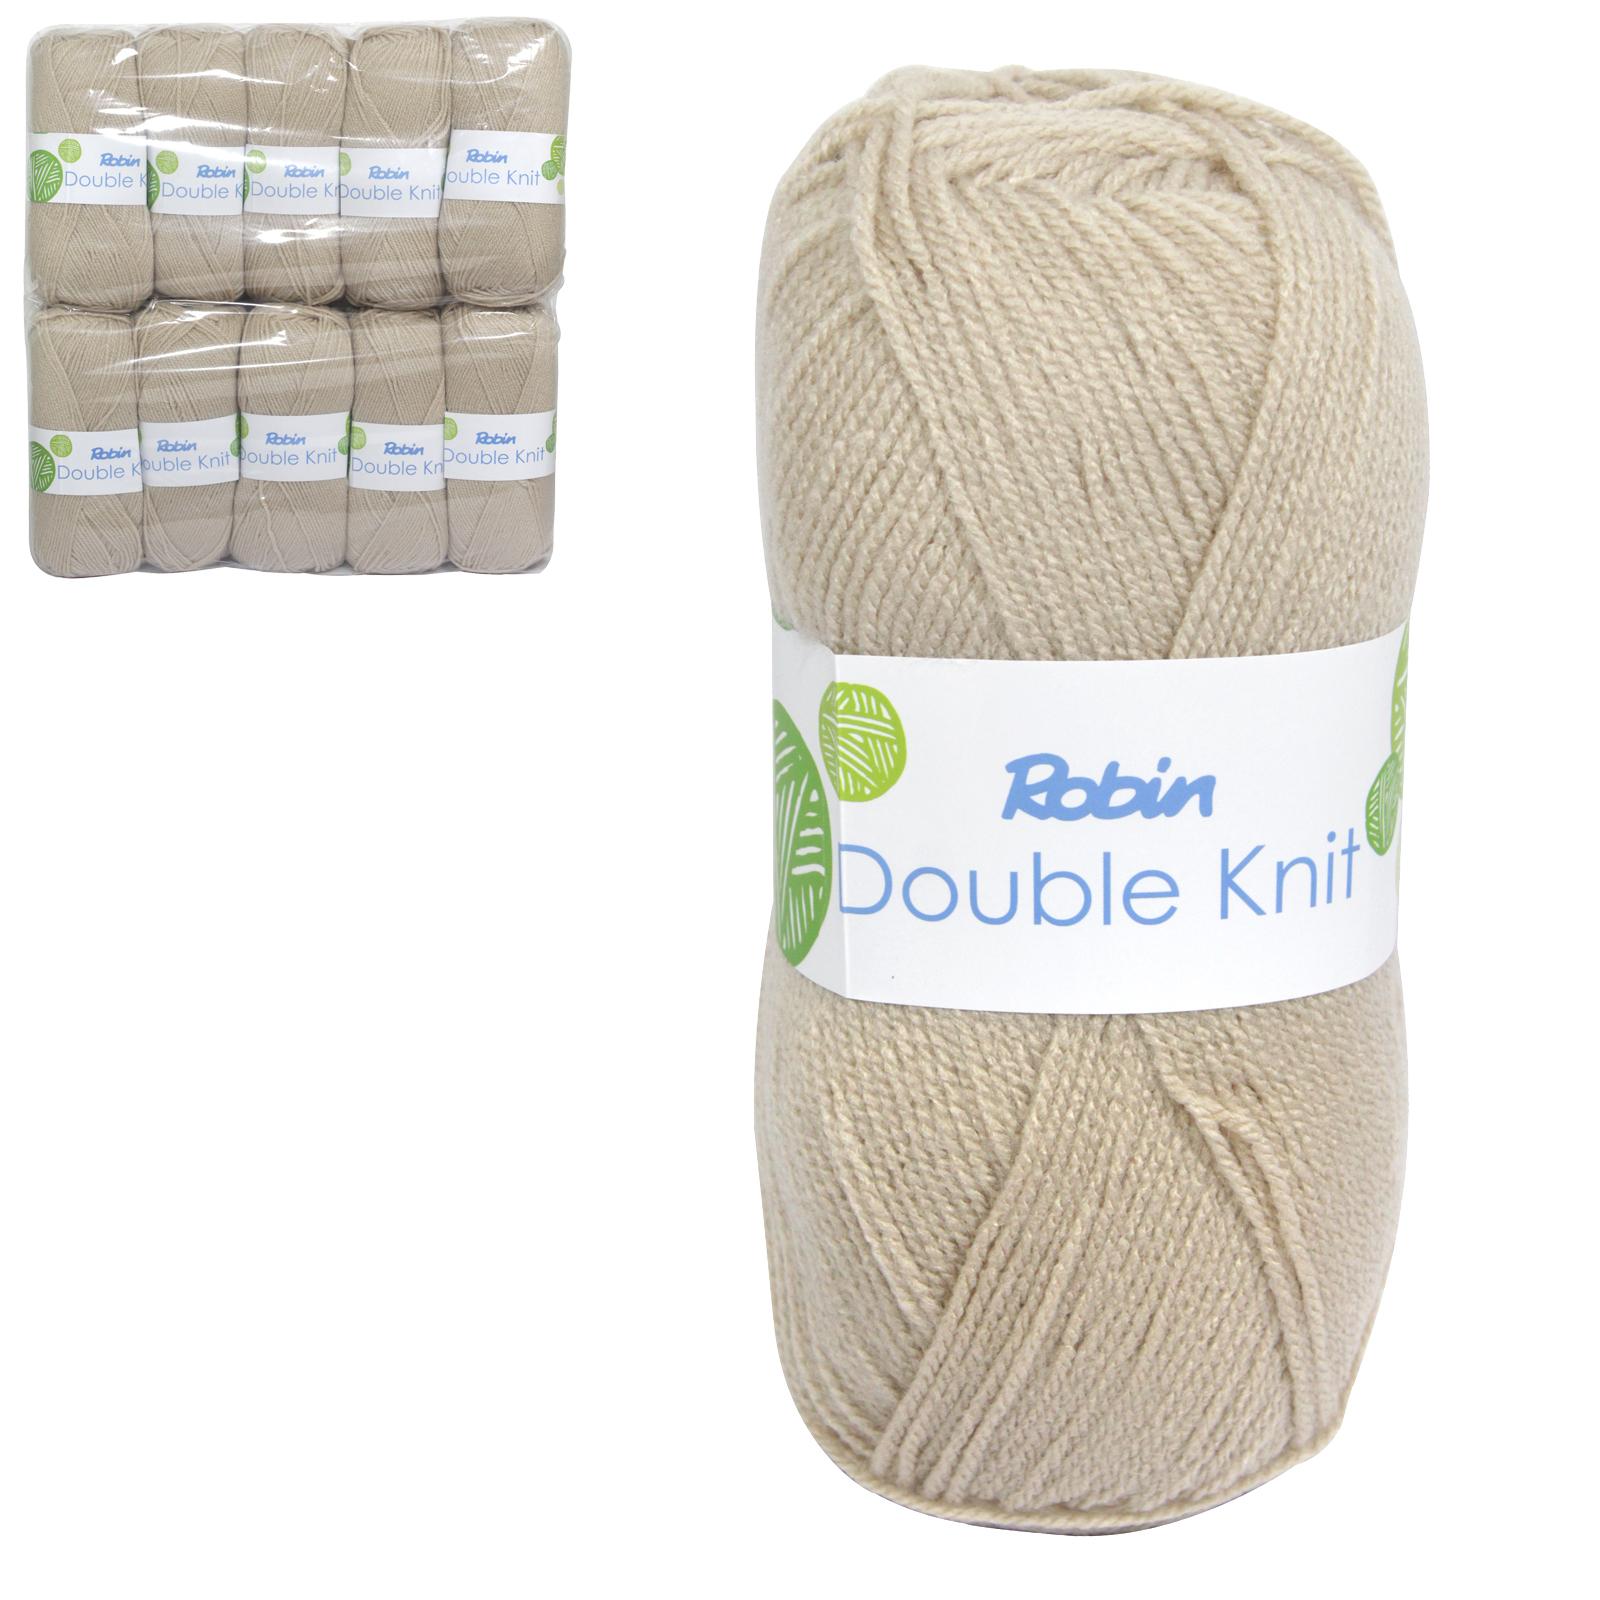 ROBIN 4032 DOUBLE KNIT WOOL WEIGHT 100GM LENGTH 300M OATMEAL X10